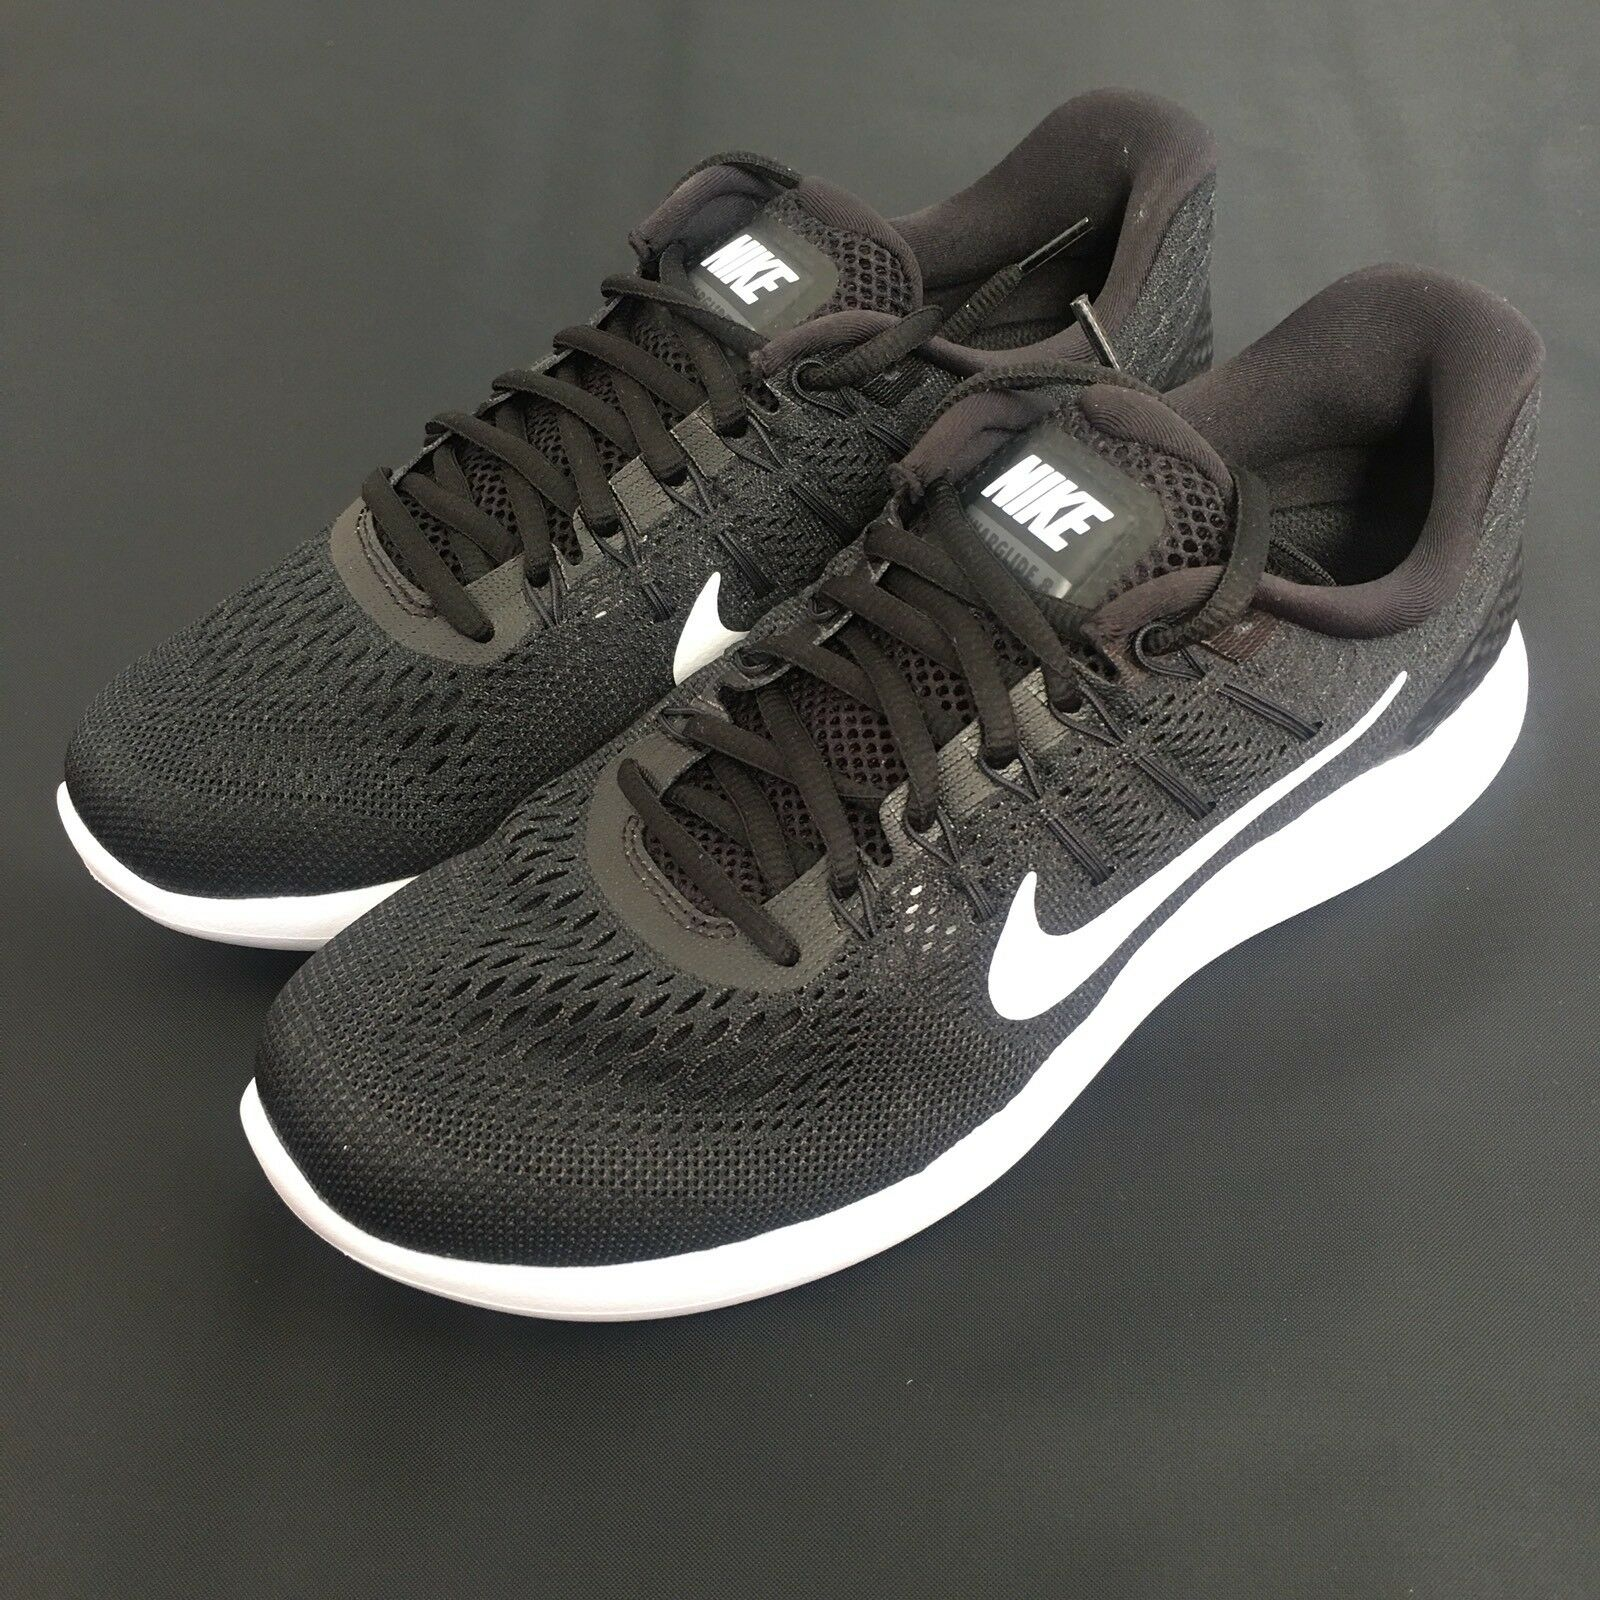 Nike Mens Lunarglide 8 AA8676-001 NWT Black White Anthracite Rare 10.5 C71